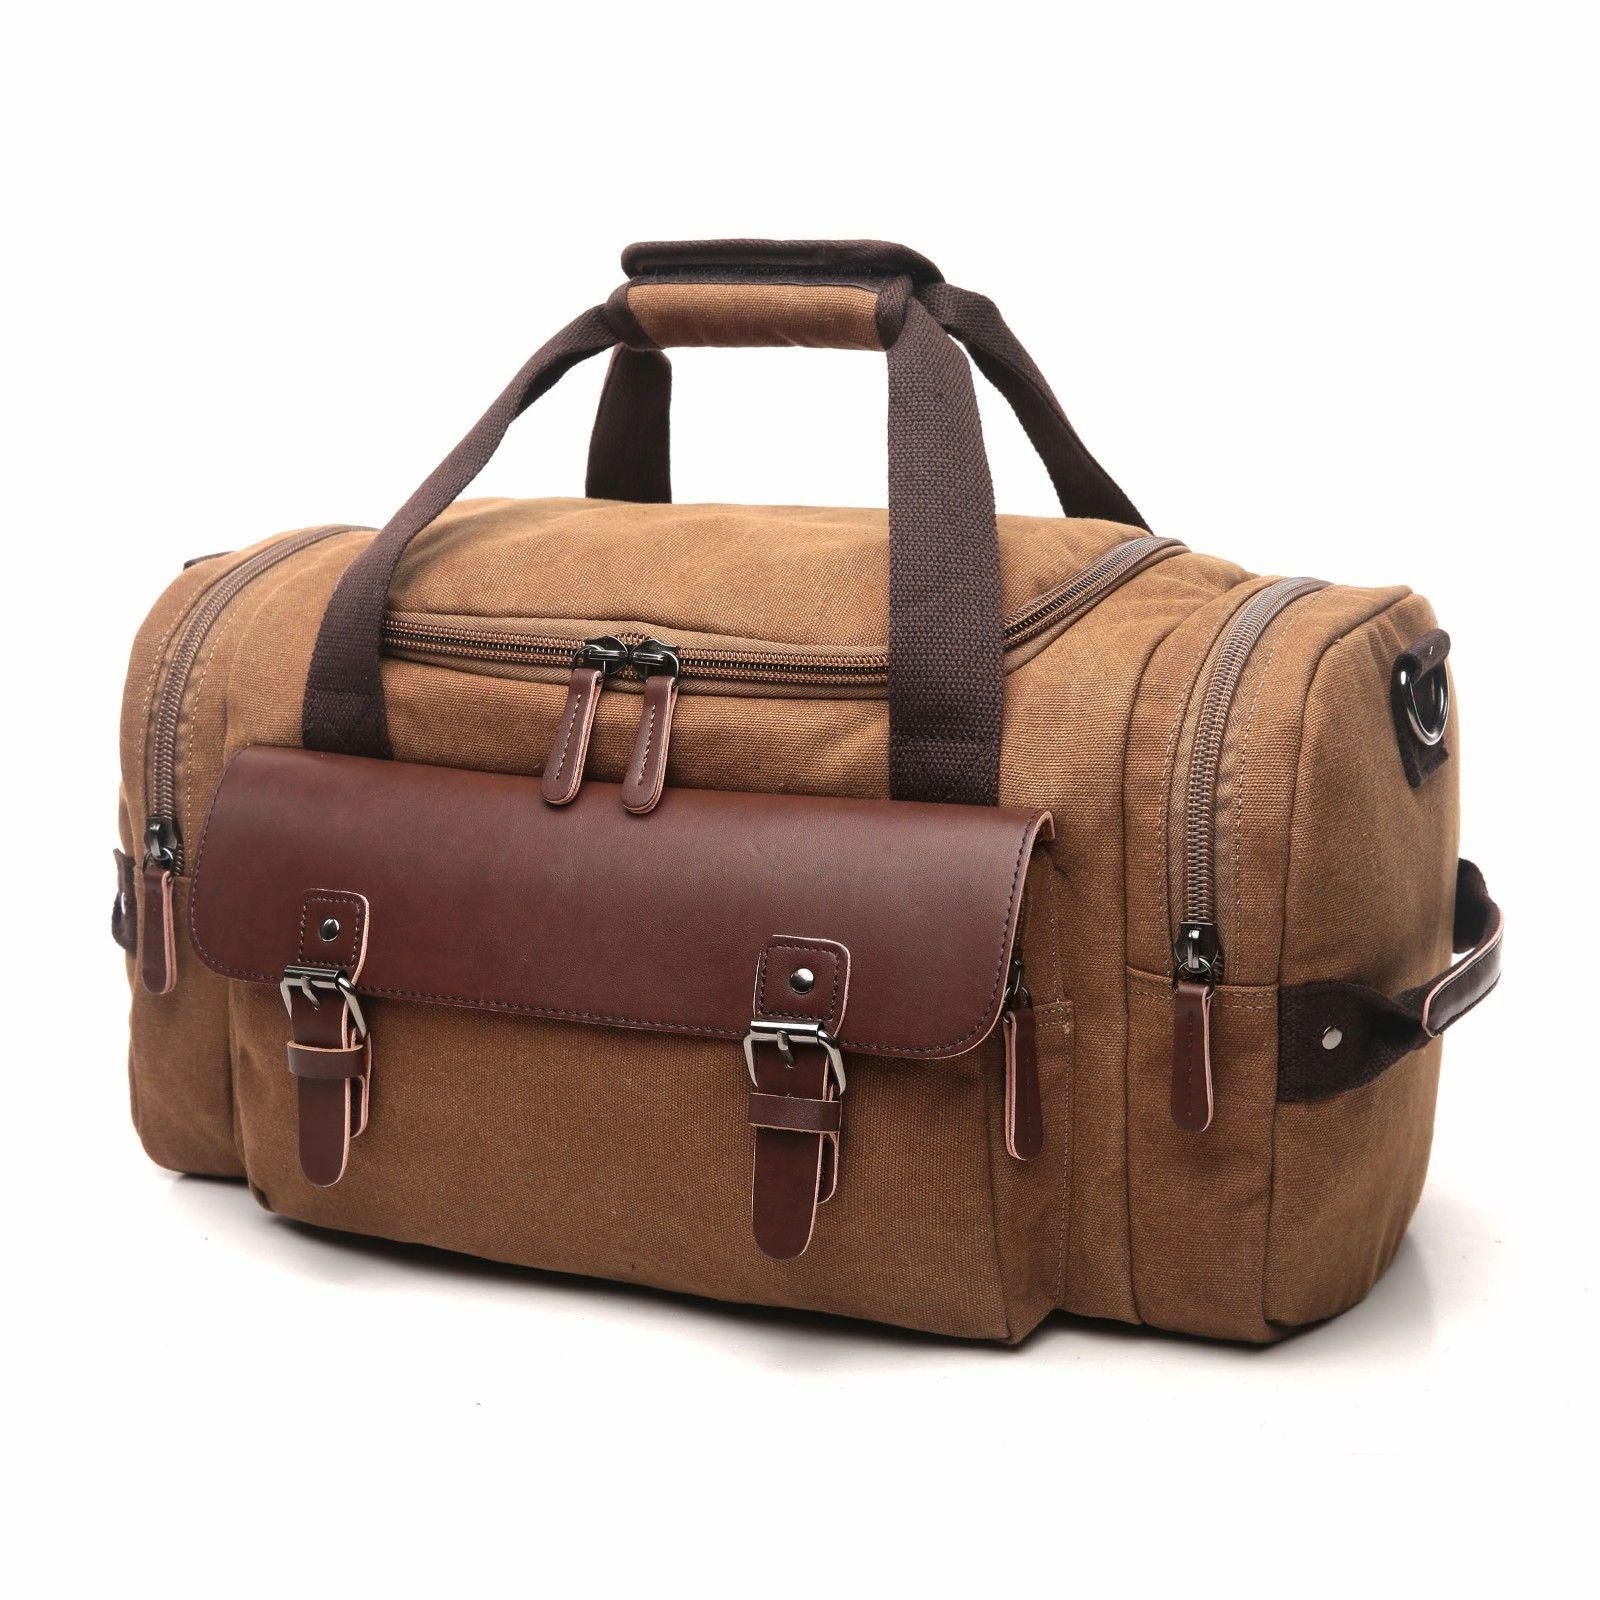 Leather Canvas Bag Tote Carry Luggage